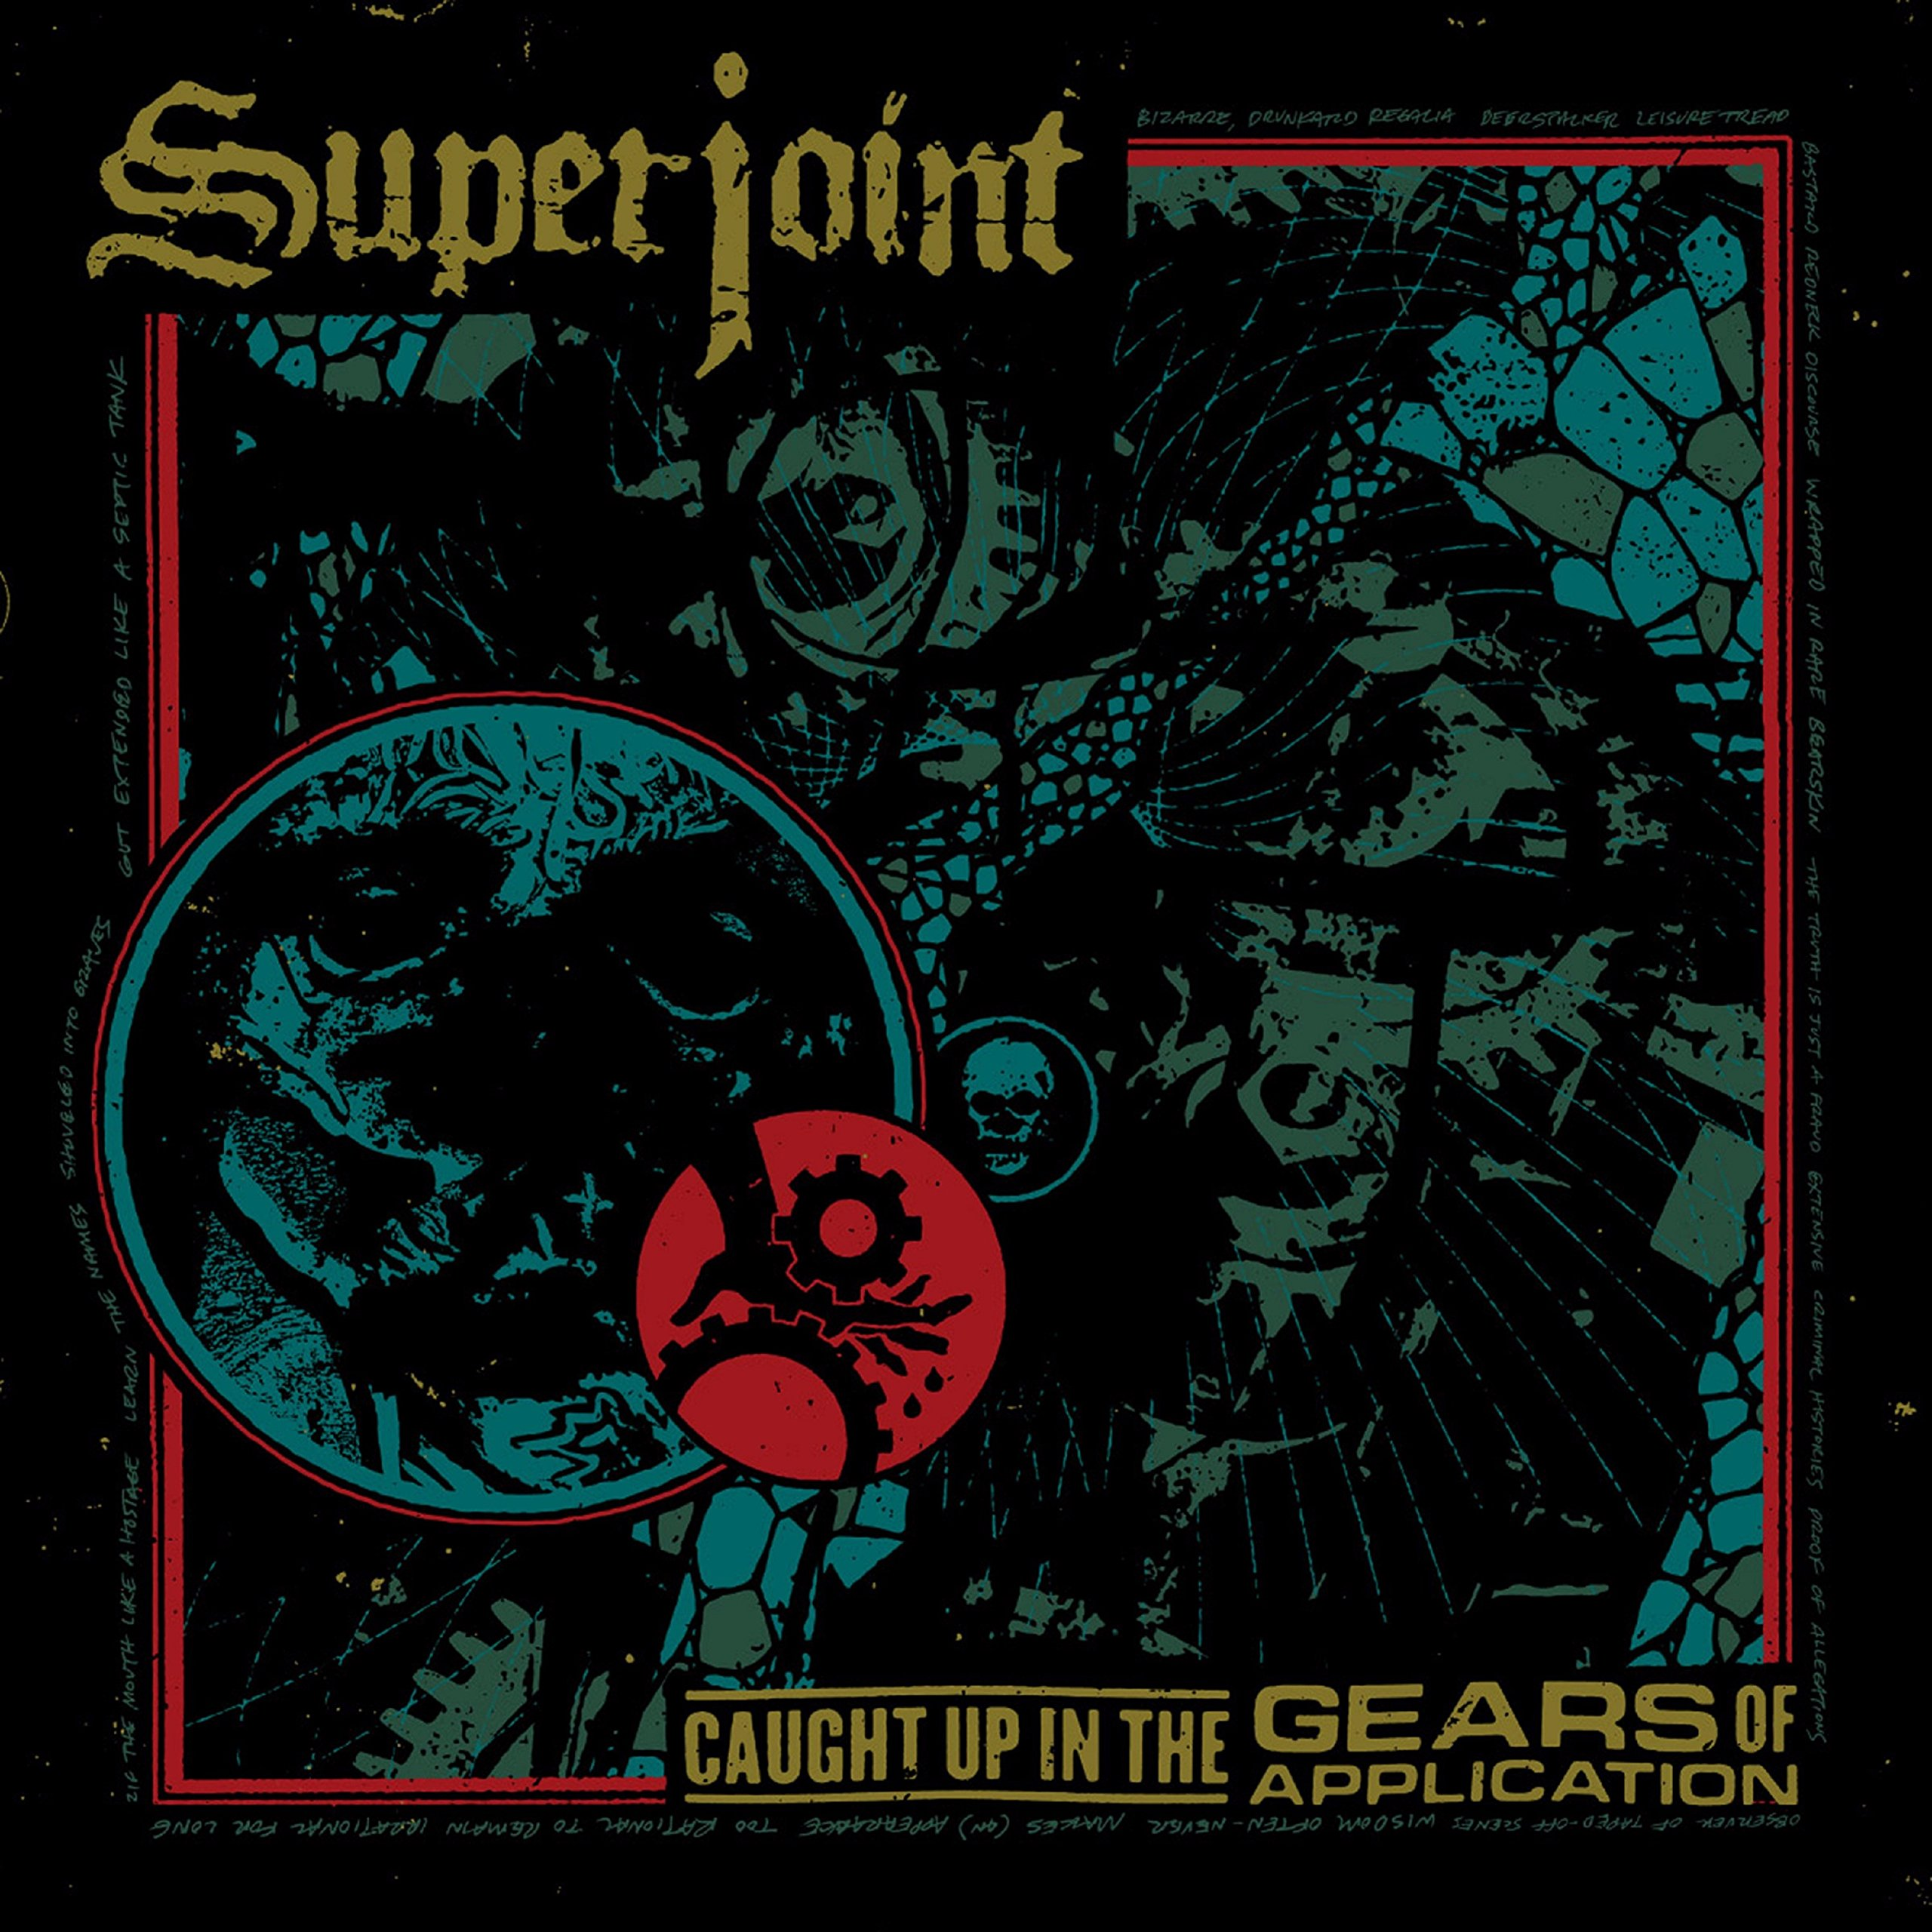 Vinilo : Superjoint - Caught Up In The Gears Of Application (LP Vinyl)